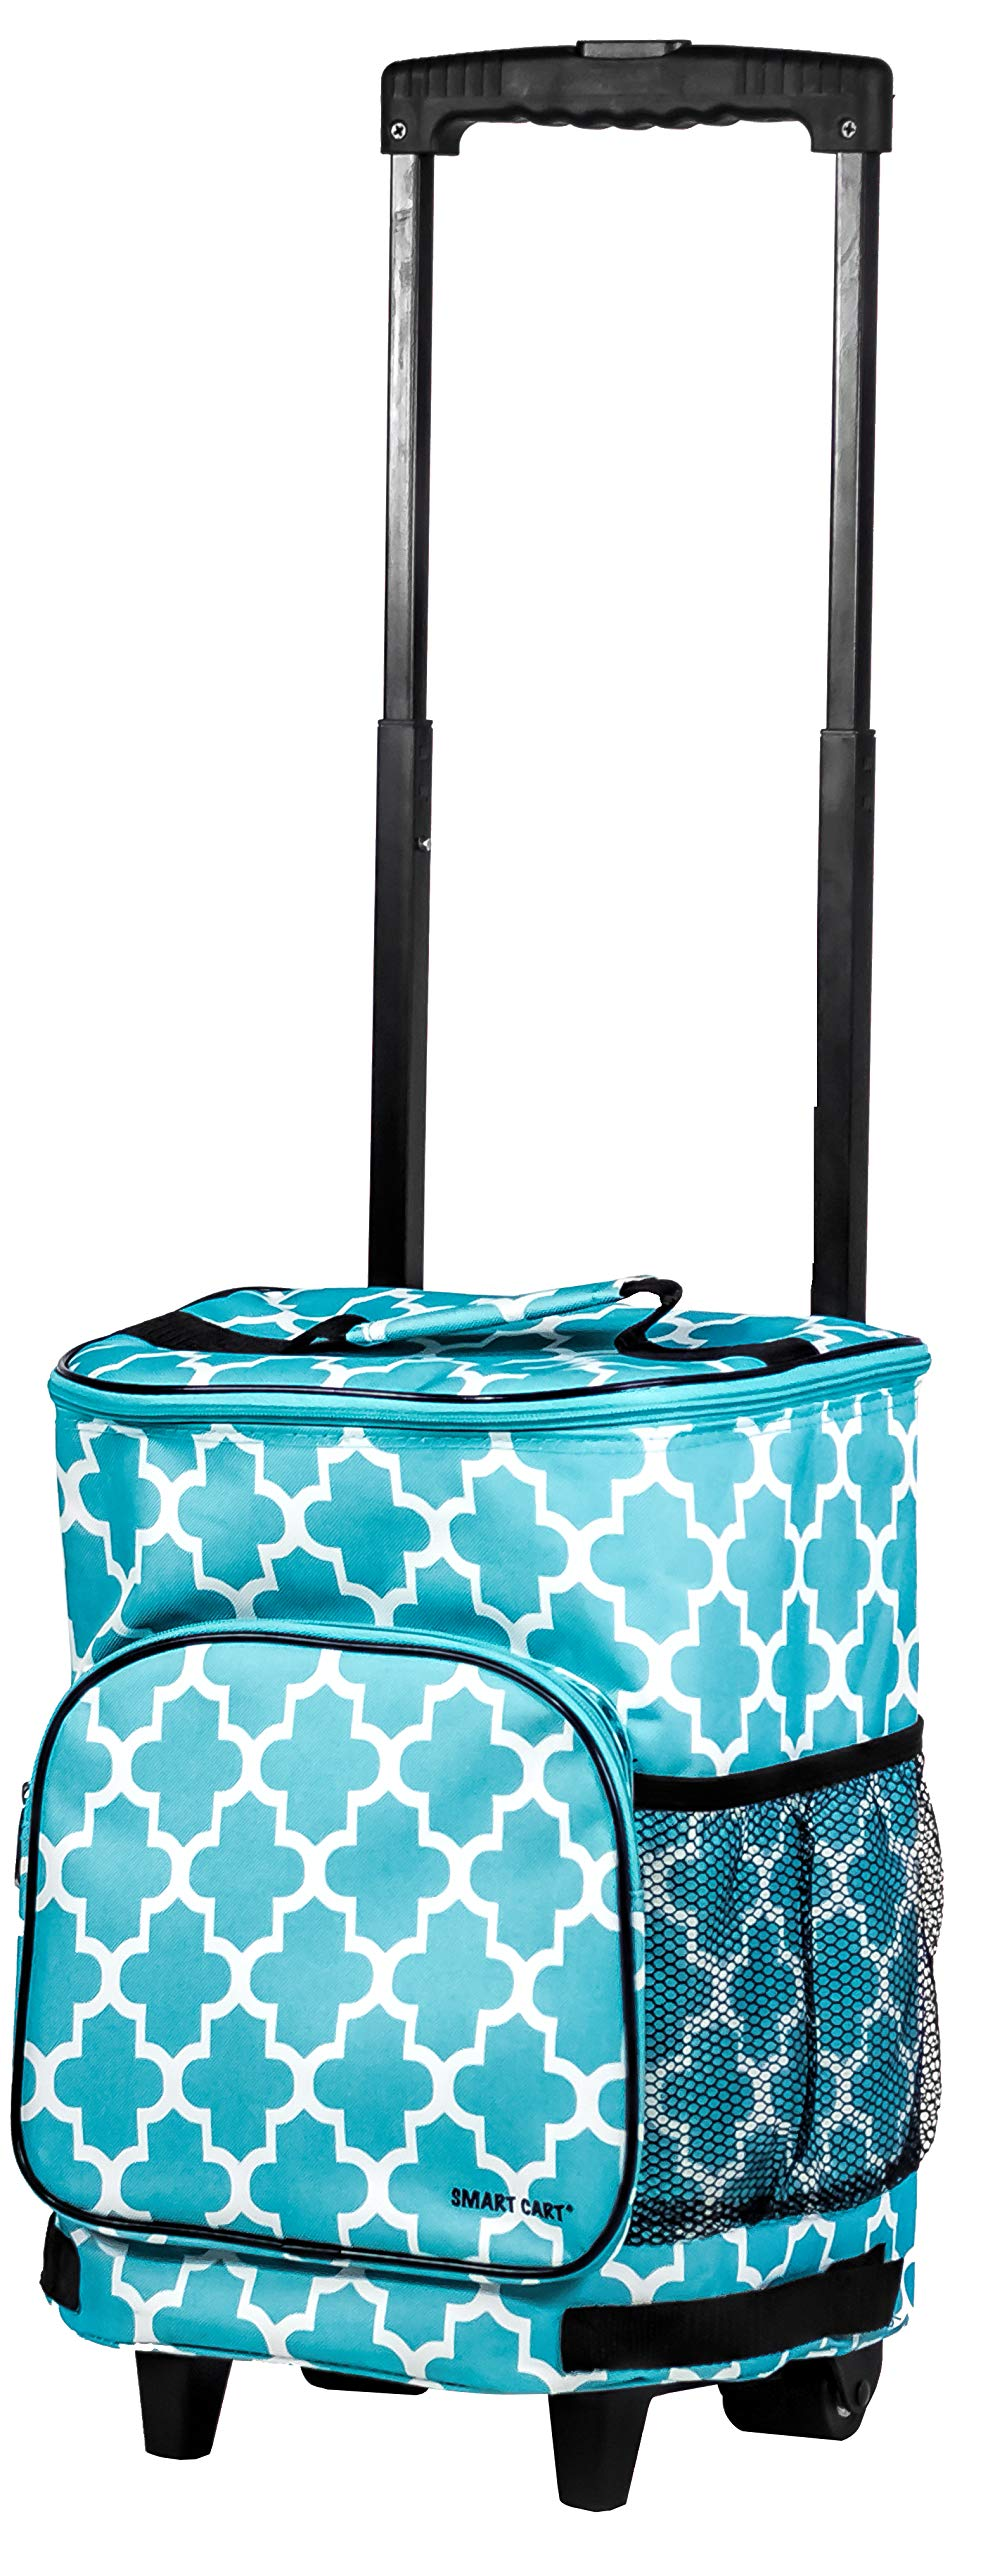 dbest products Ultra Compact Cooler Smart Cart, Moroccan Tile Insulated Collapsible Rolling Tailgate BBQ Beach Summer by dbest products